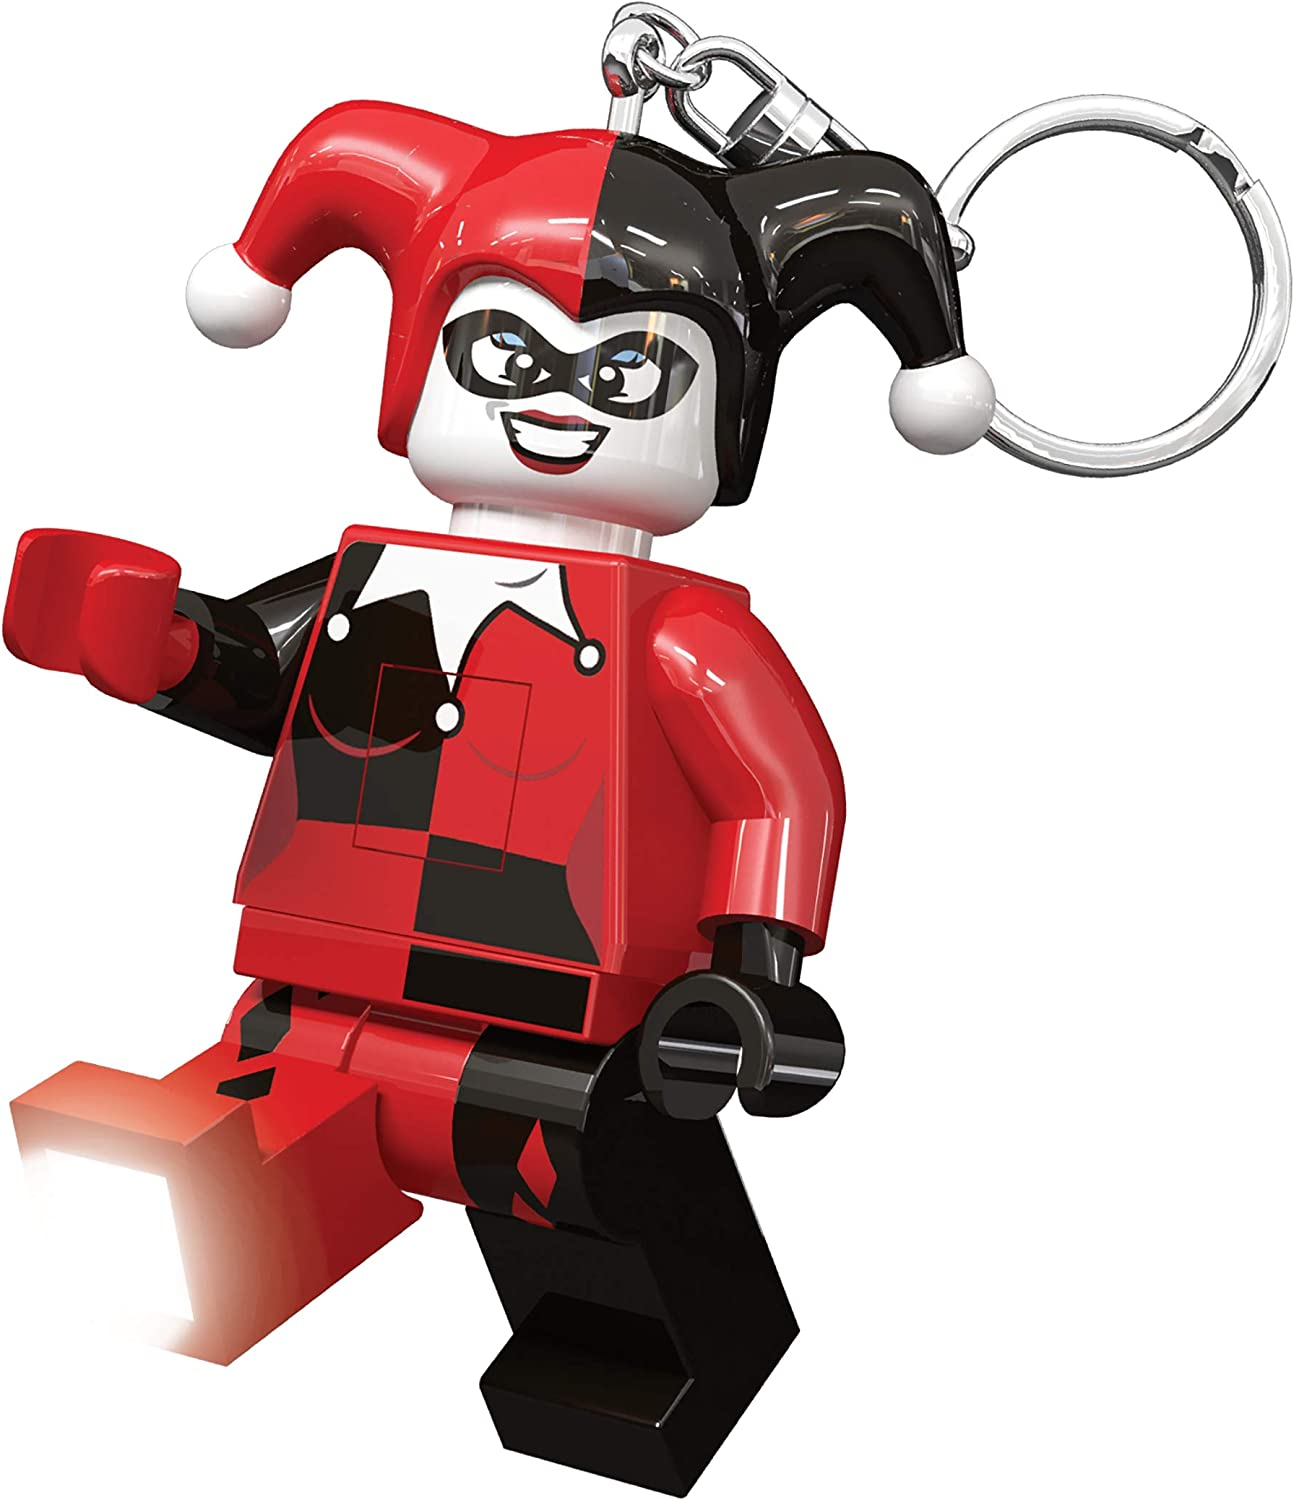 LEGO DC Comics Super Heroes - Harley Quinn Key Chain Flashlight